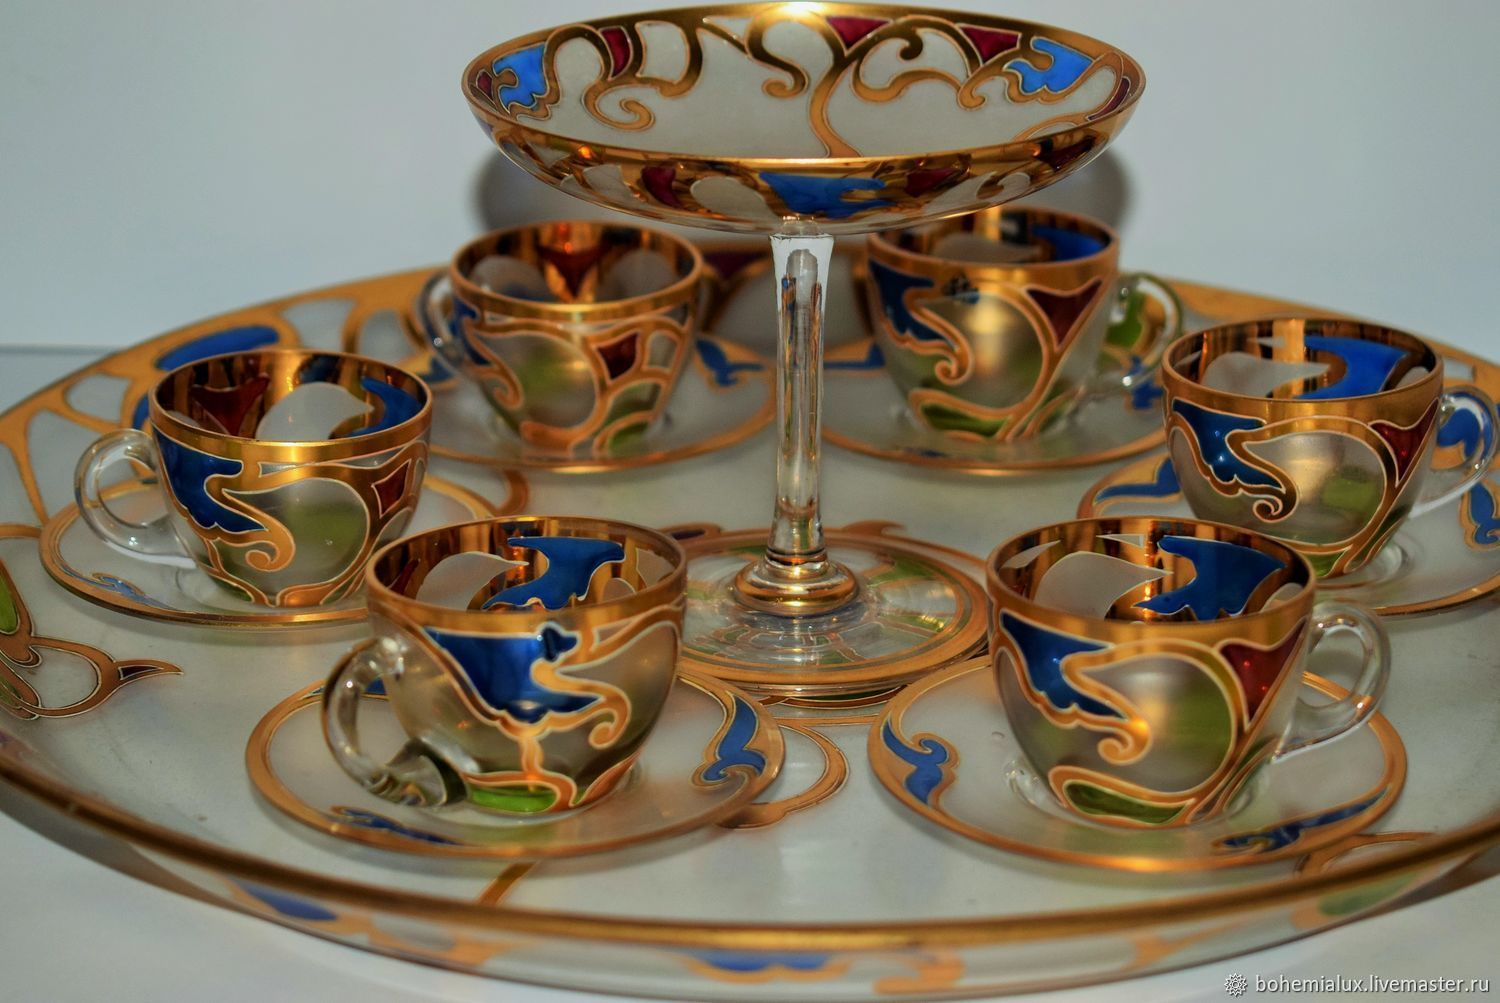 Coffee set, tray, sugar bowl, 6 cups and saucers Harrach Harrach – shop  online on Livemaster with shipping - HB20VCOM | Prague